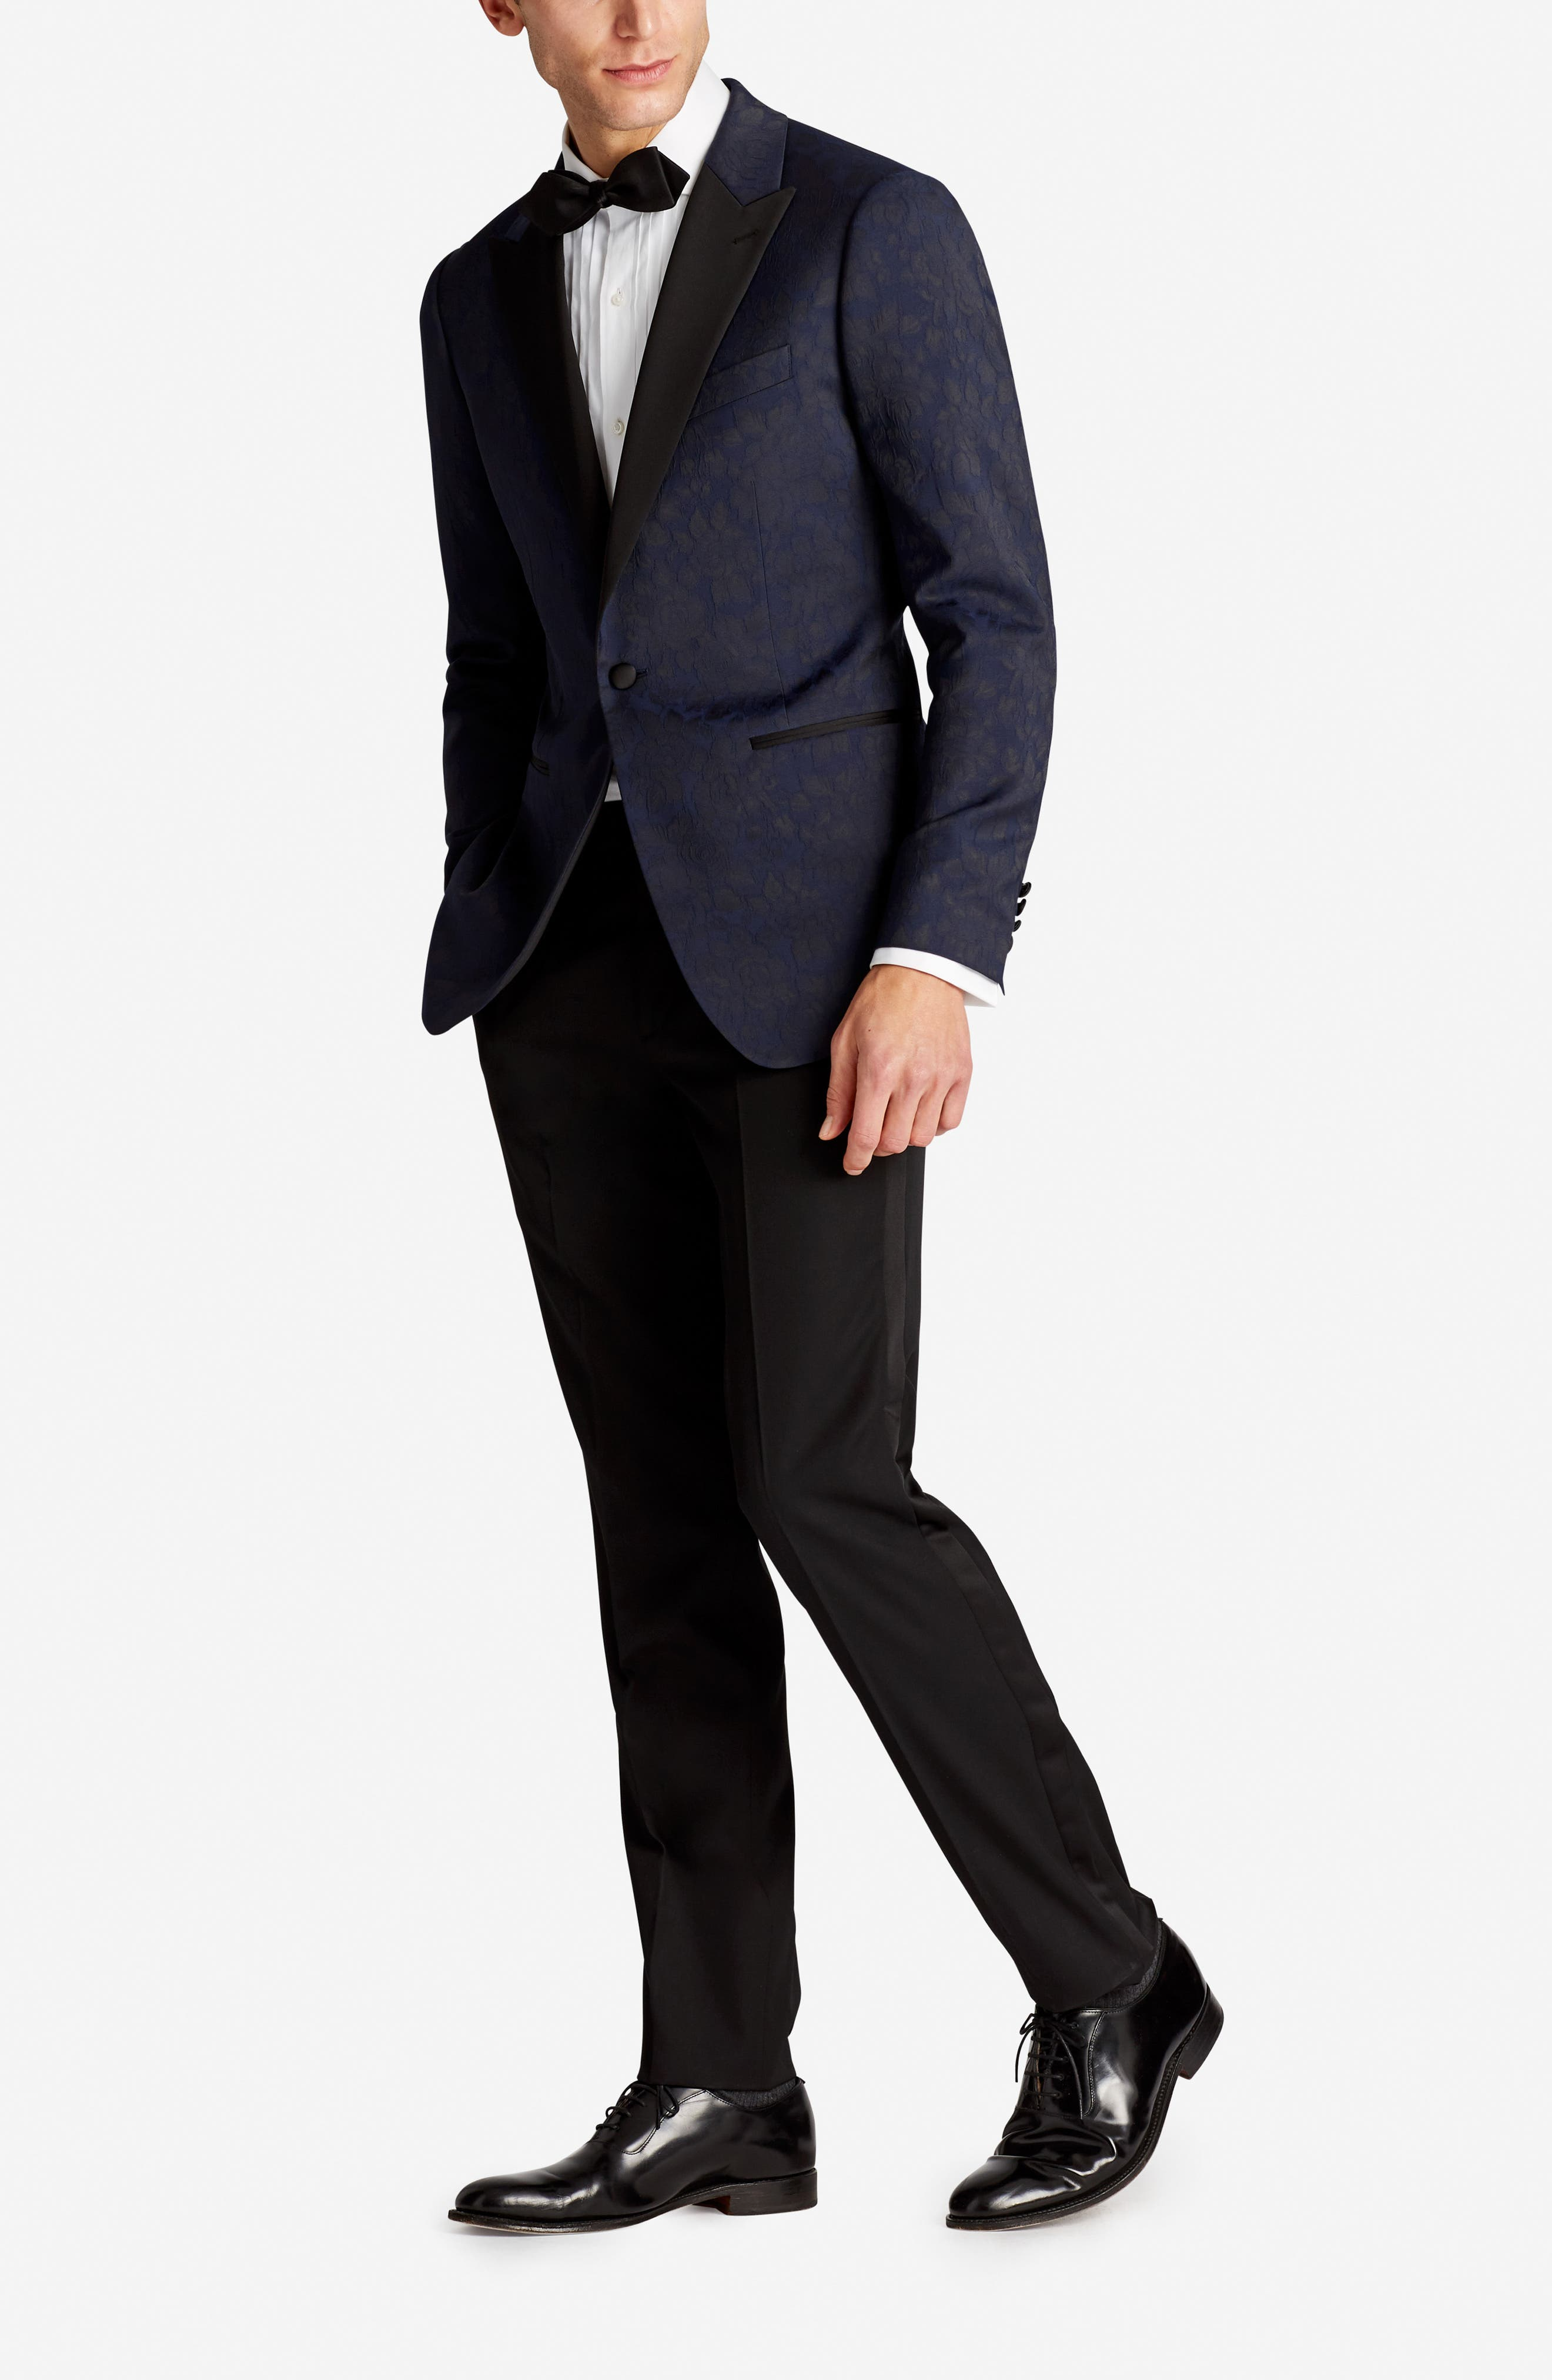 Capstone Slim Fit Stretch Dinner Jacket,                             Alternate thumbnail 4, color,                             Floral Jacquard